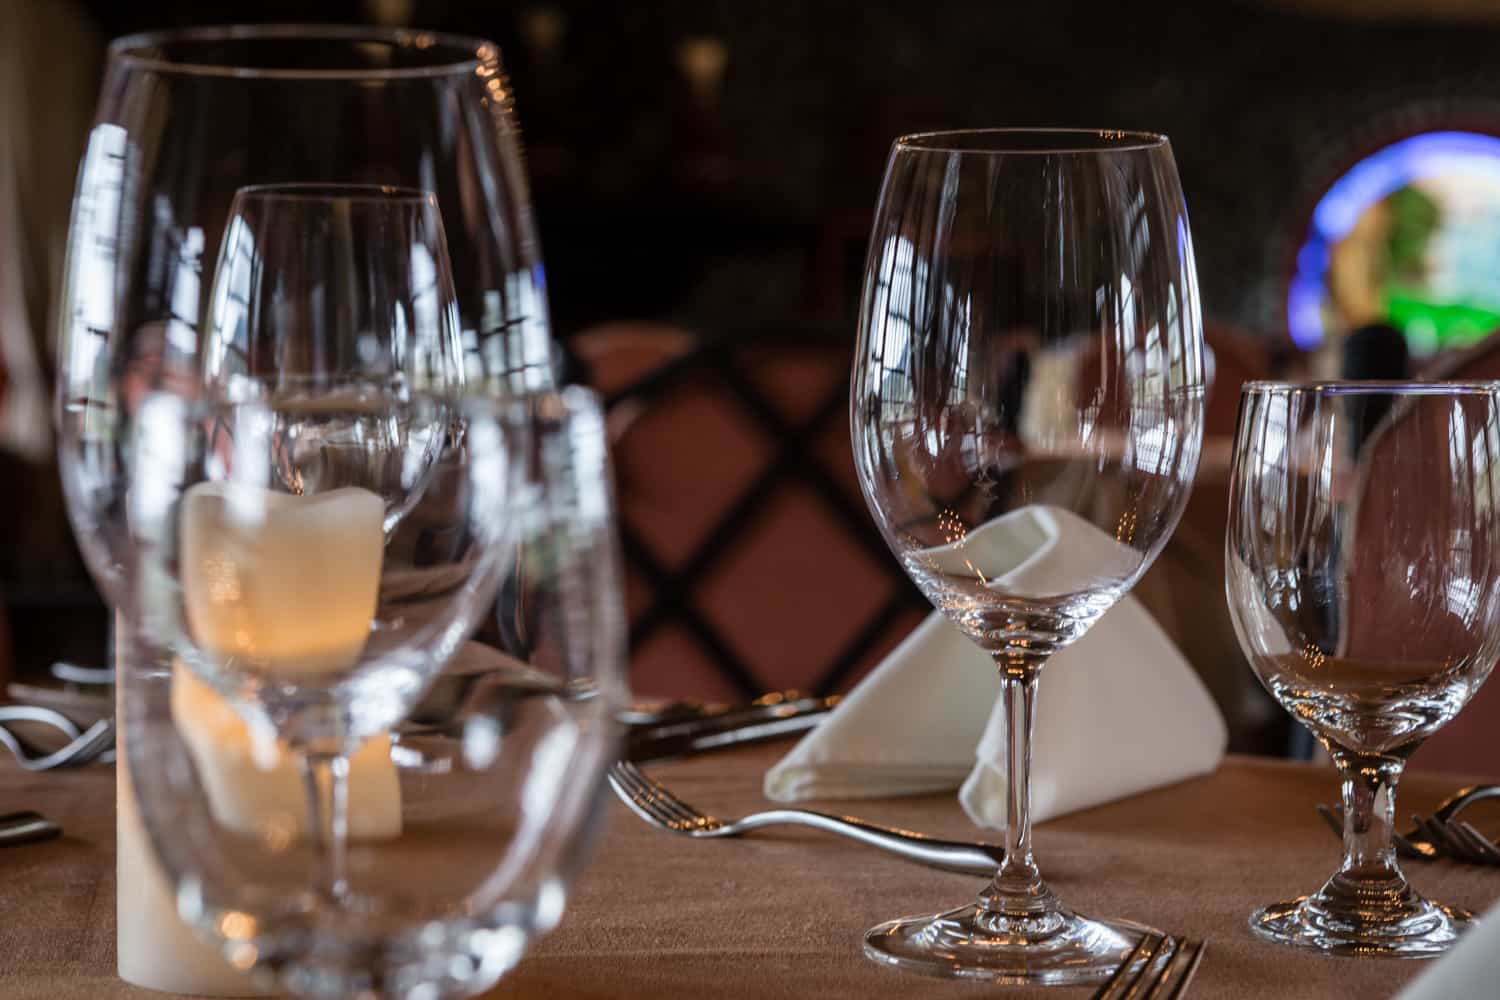 Close-up photo of wine glasses and table setting at Peace Lodge restaurant.